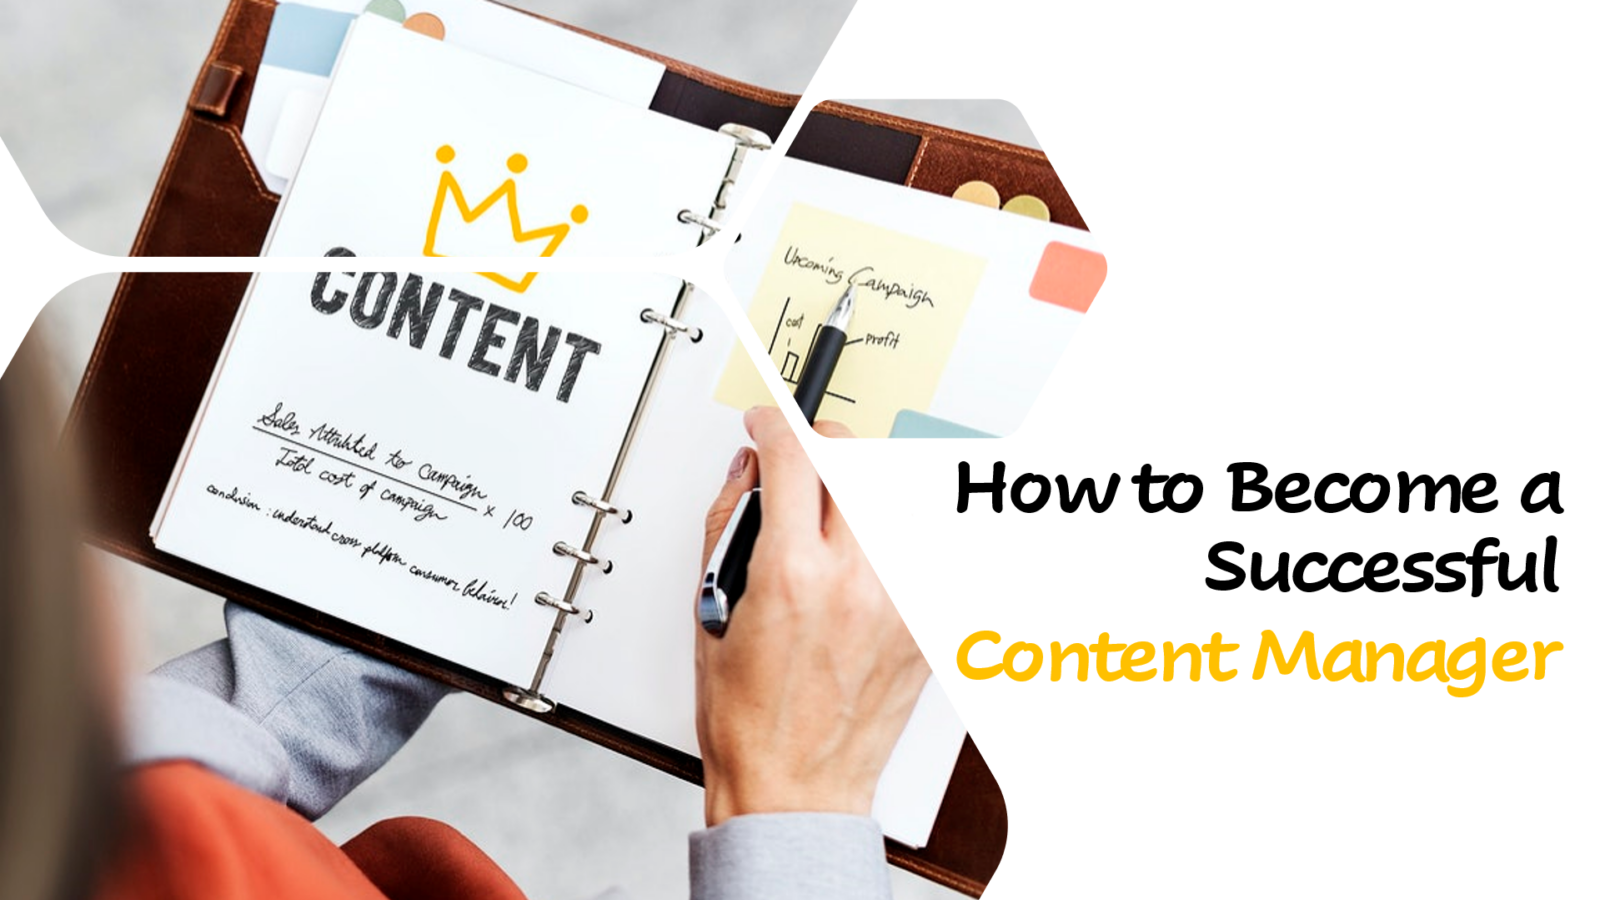 How to Become a Successful Content Manager